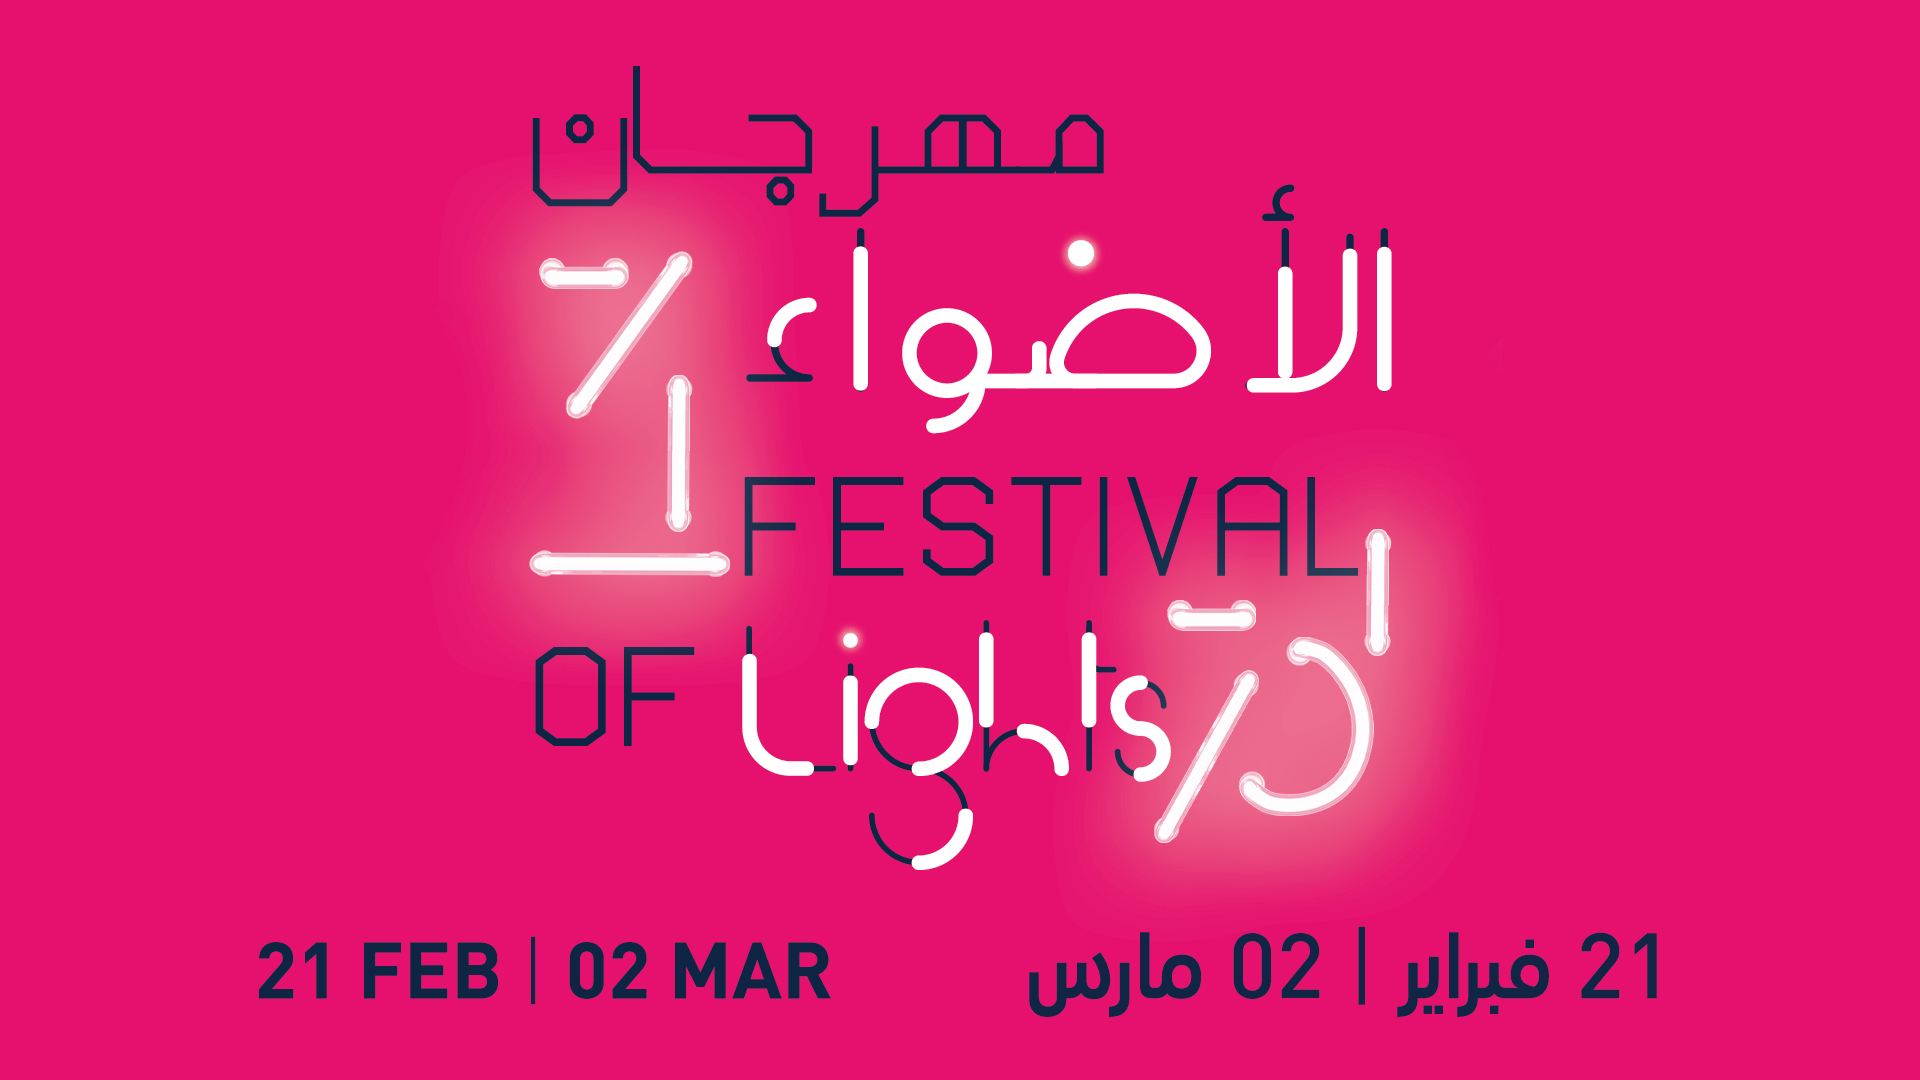 Kuwait Festival of Lights